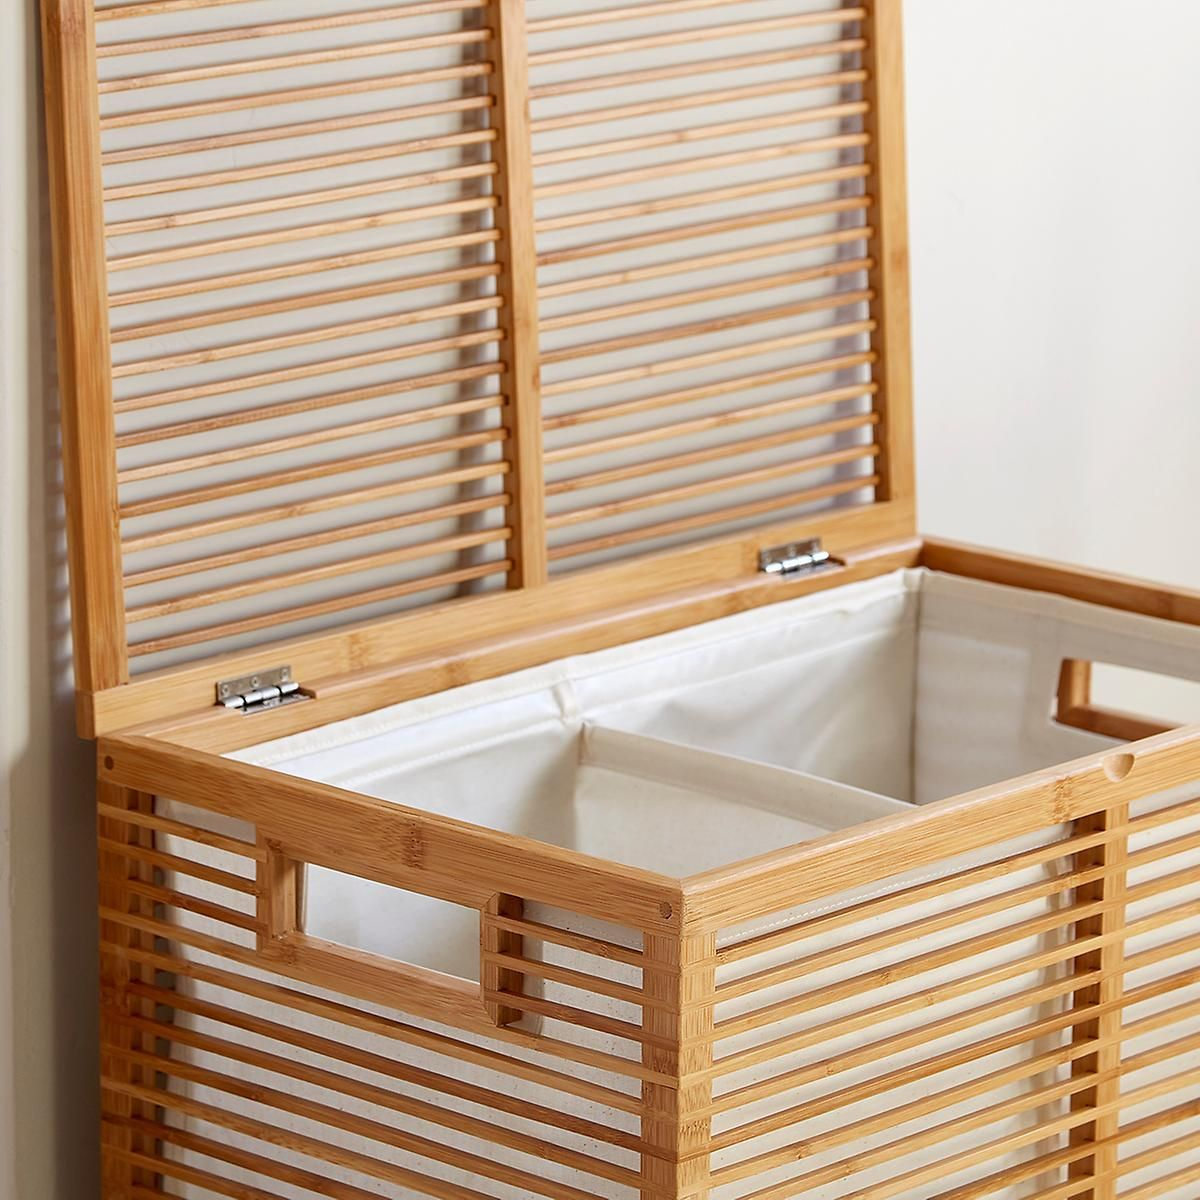 Our Zen Bamboo Laundry Hamper Is A Stunning Solution For Containing Laundry It S So Well Designed You Won T W Laundry Hamper Hamper Laundry Room Organization